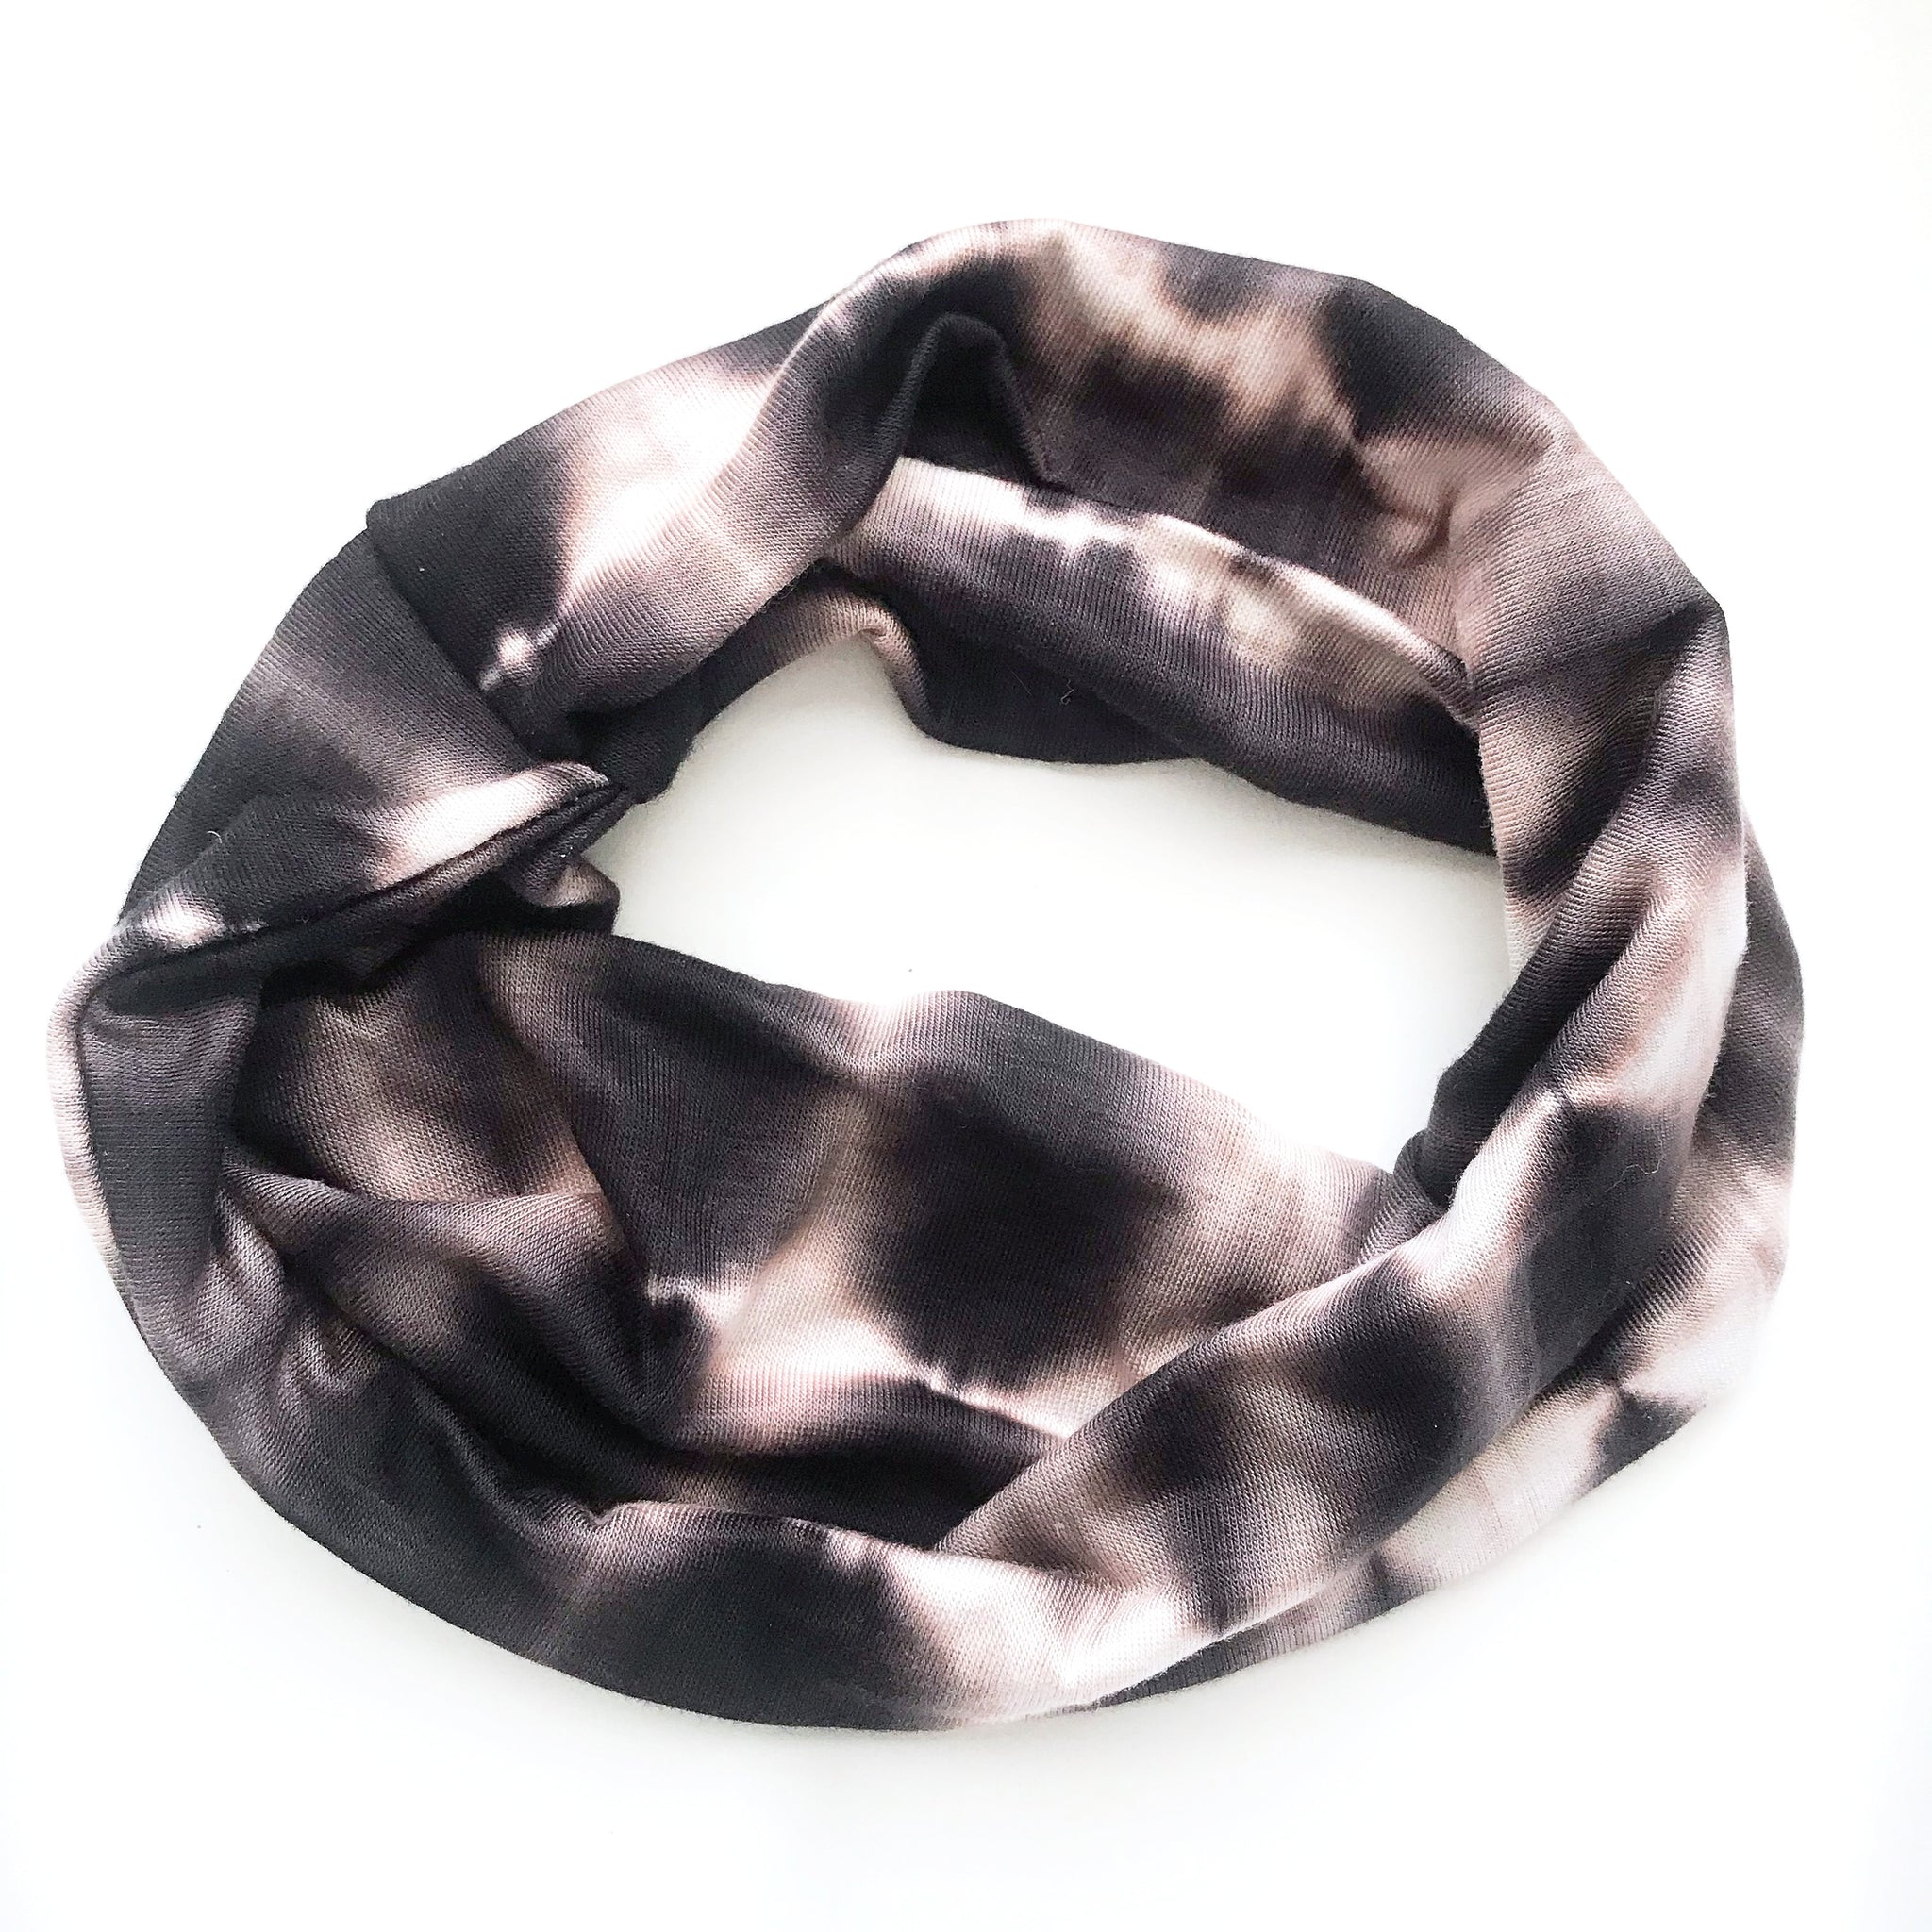 Run Away Double Twist Headband